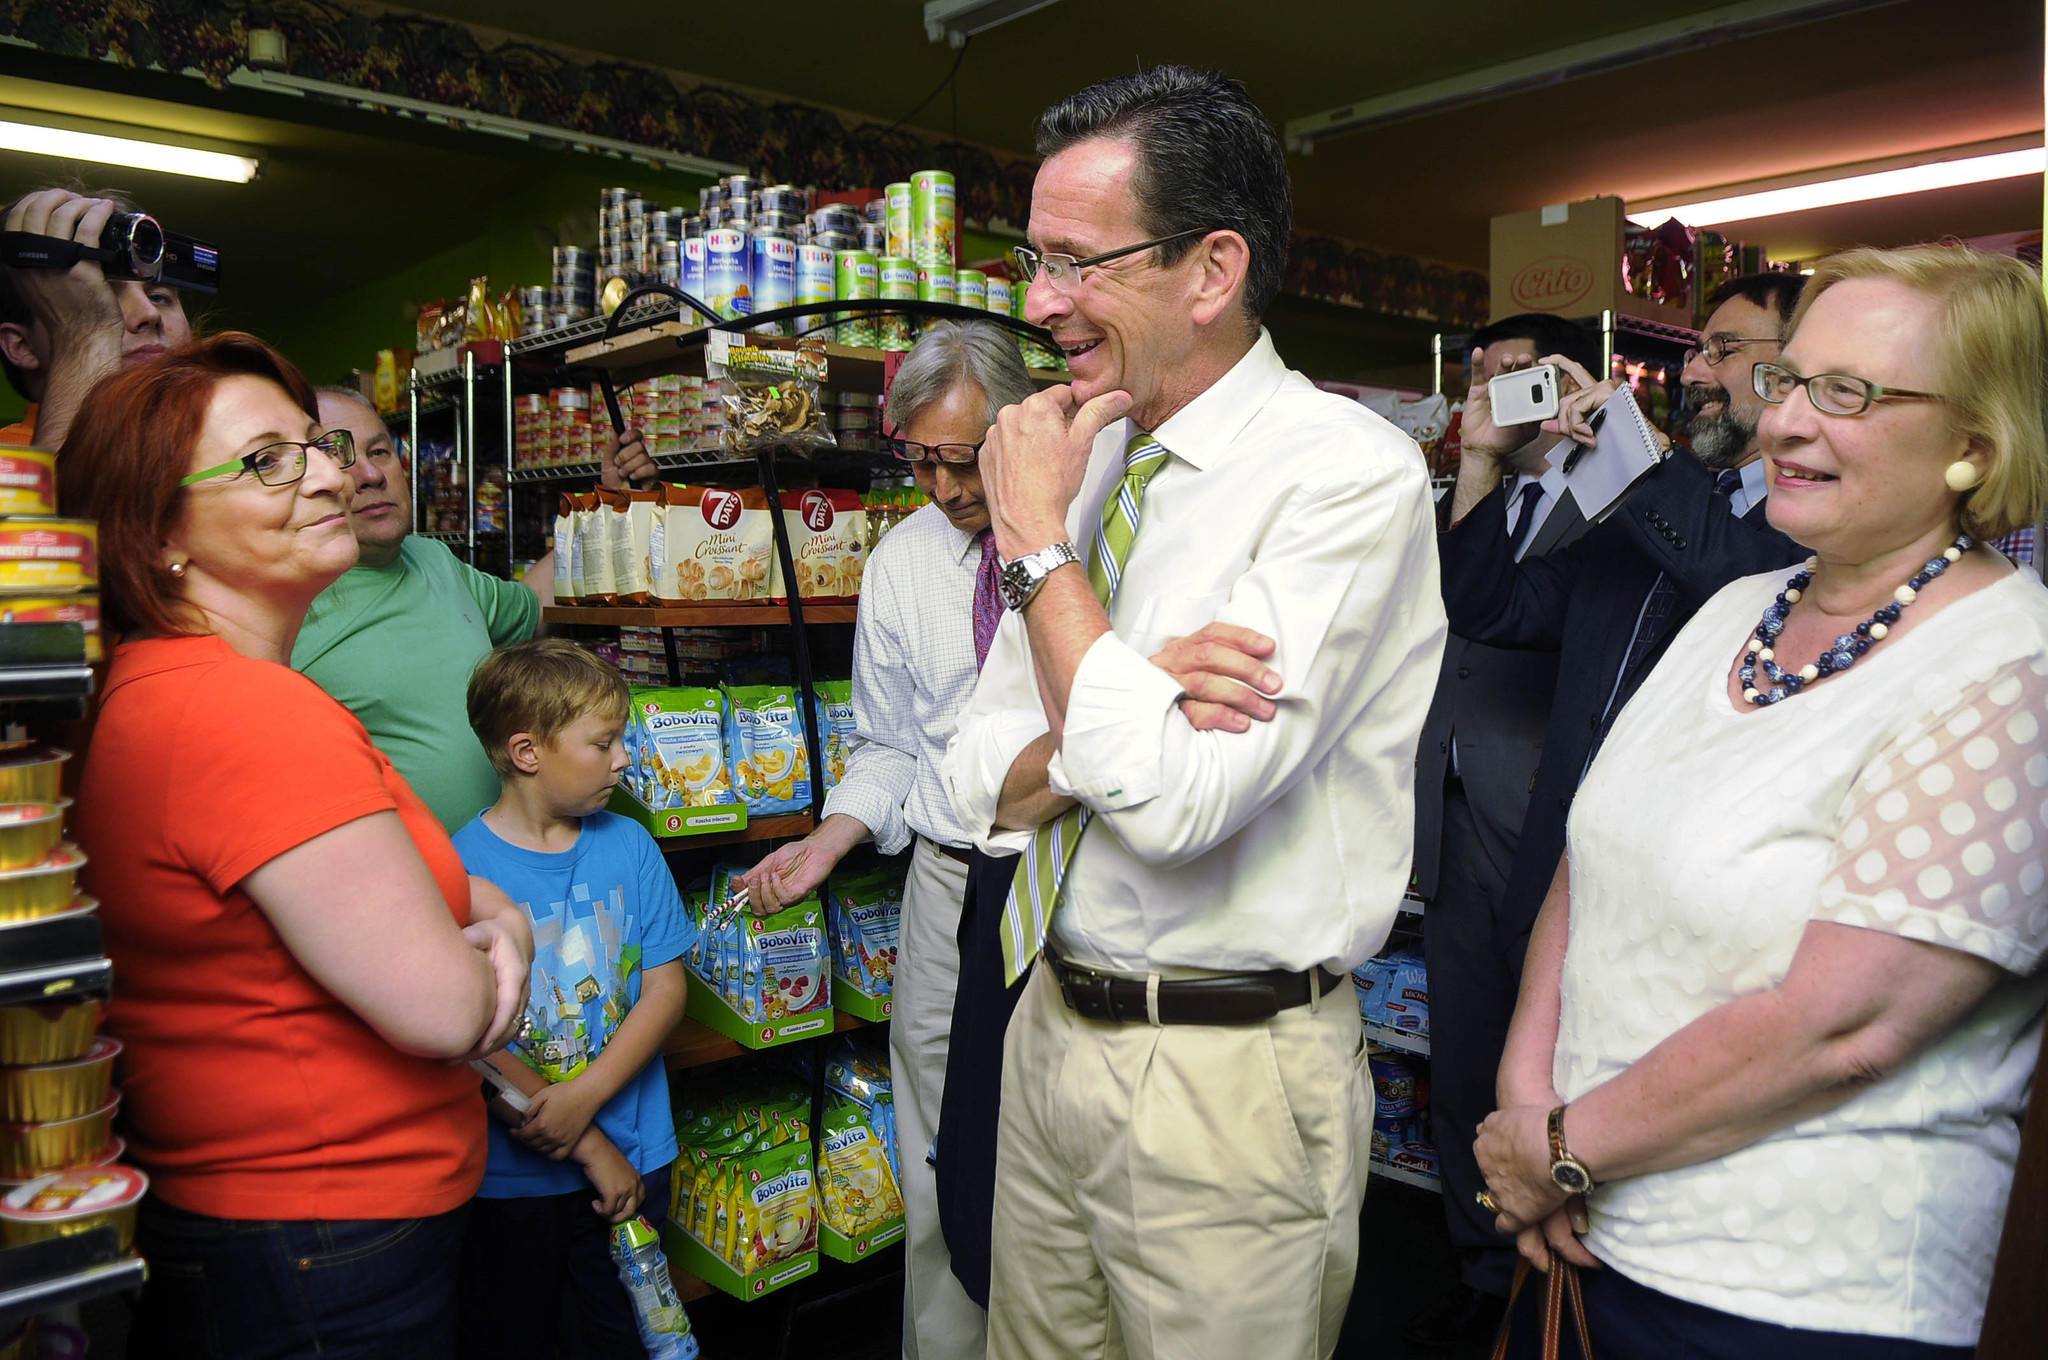 Gov. Dannel Malloy visits with Beata and Slawek Rulka (left) and their son, Jacob, 9, at Zieleniak Green Grocer Deli on Broad Street in New Britain Thursday evening as his re-election campaign gets underway. Malloy was accompanied by Rep. Peter Tercyak (center, background) and Sen. Terry Gerratana (right) as he toured Broad Street in the heart of the city's Polish neighborhood.